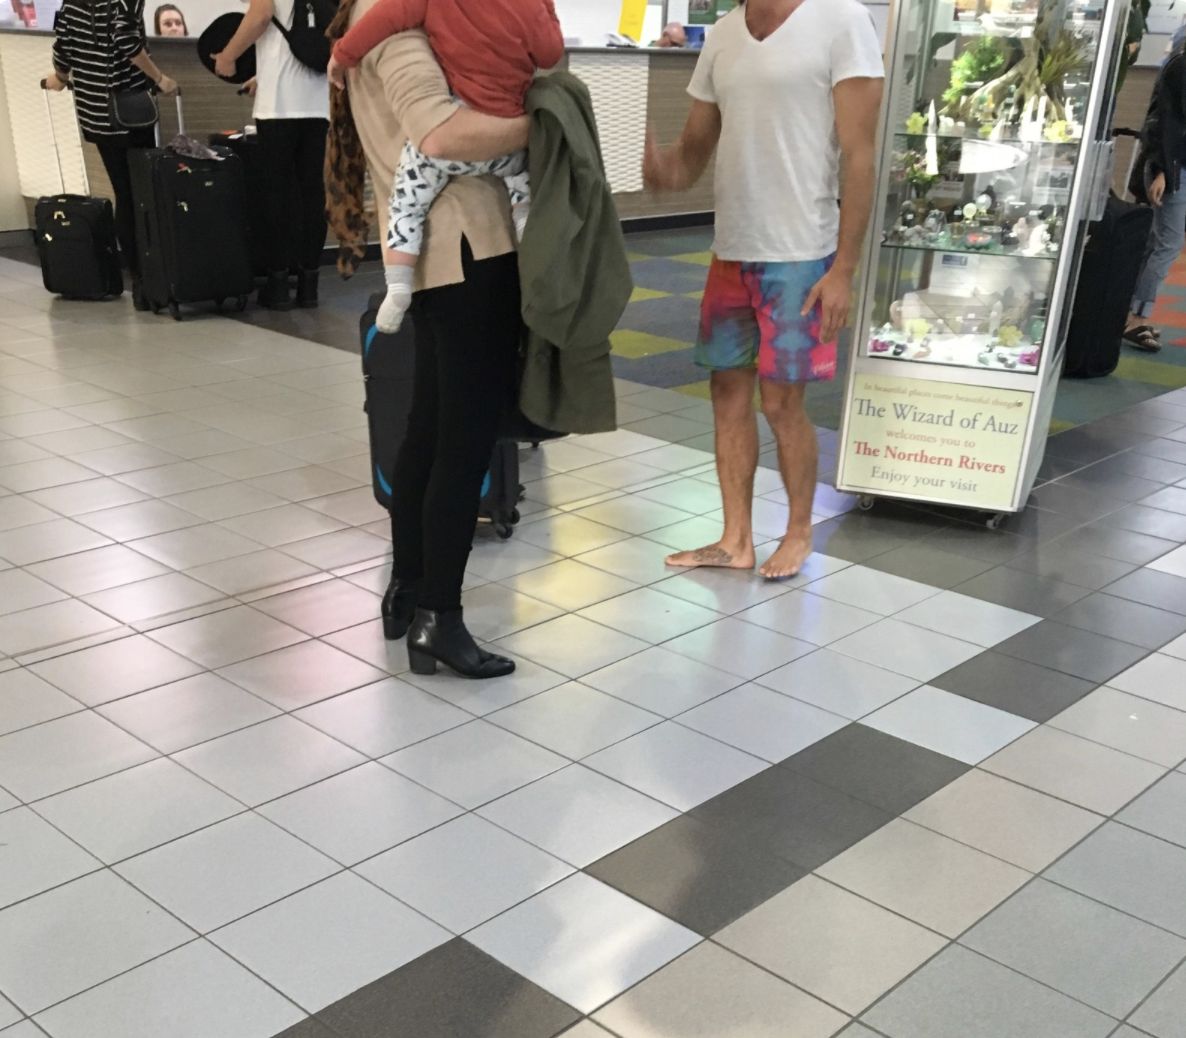 A barefoot man talking to some people